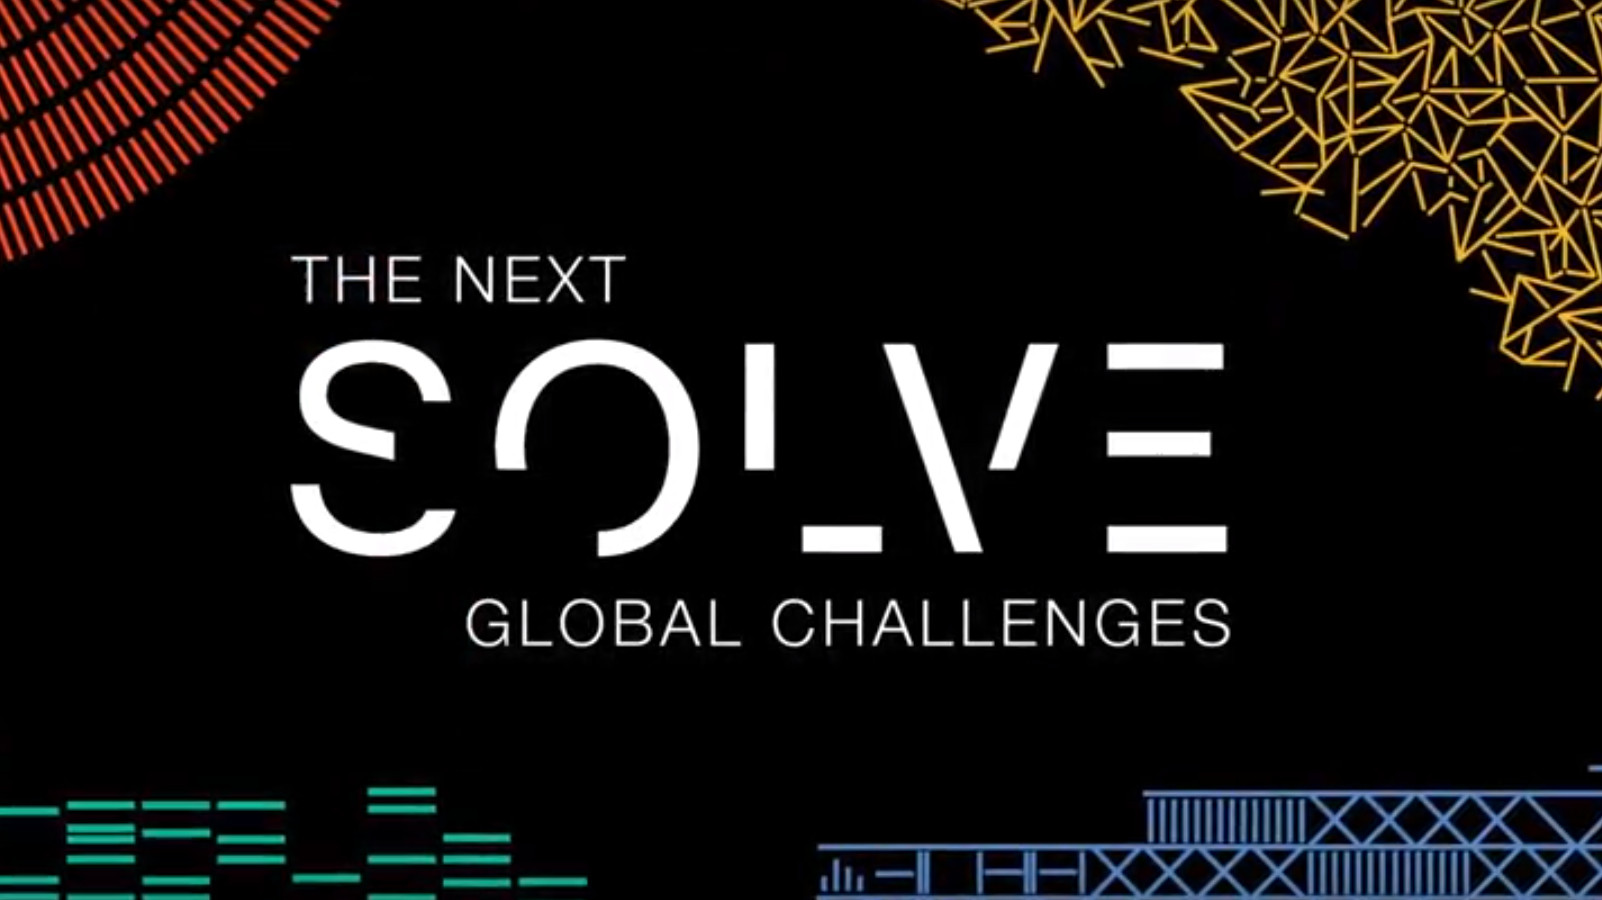 Massachusetts Institute of Technology (MIT) Solve Global Challenges 2019 (Over $1.5 million in funding)